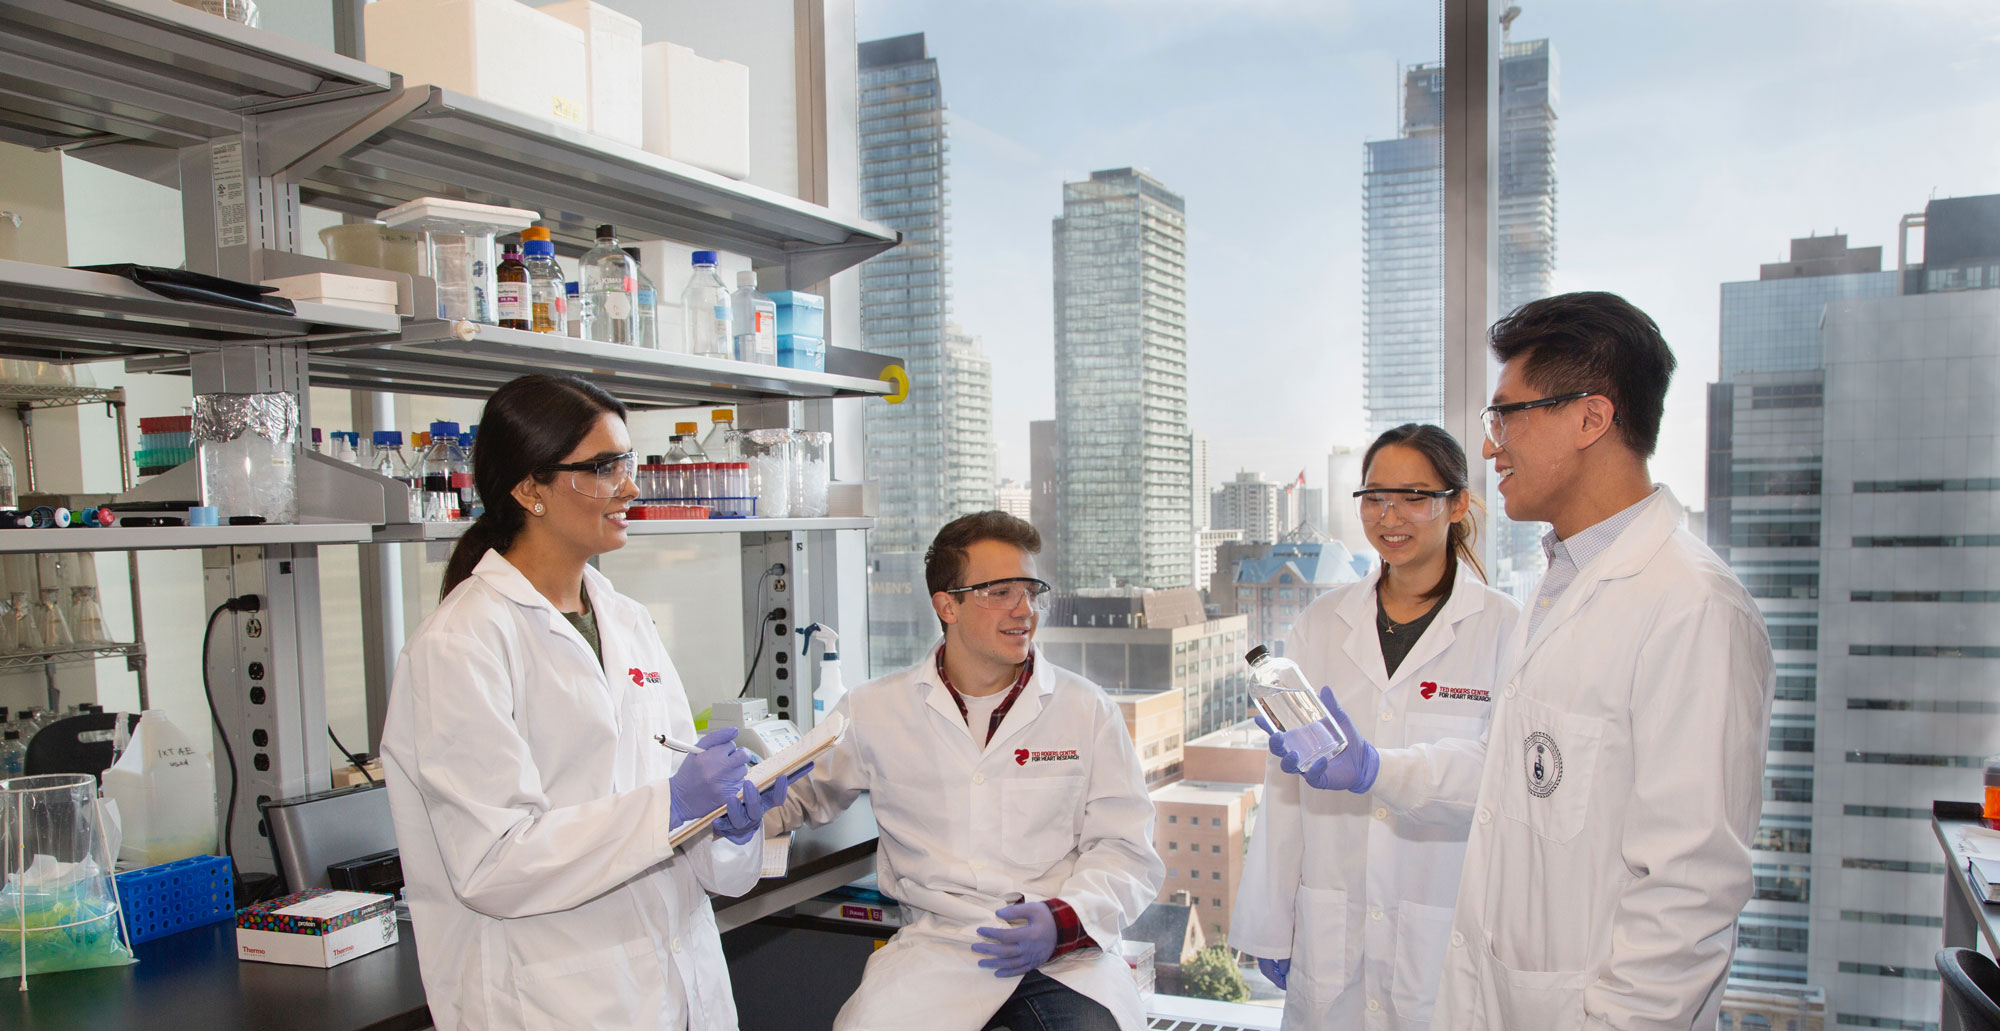 Translational Biology and Engineering Program (TBEP) labs in the west tower of MaRS